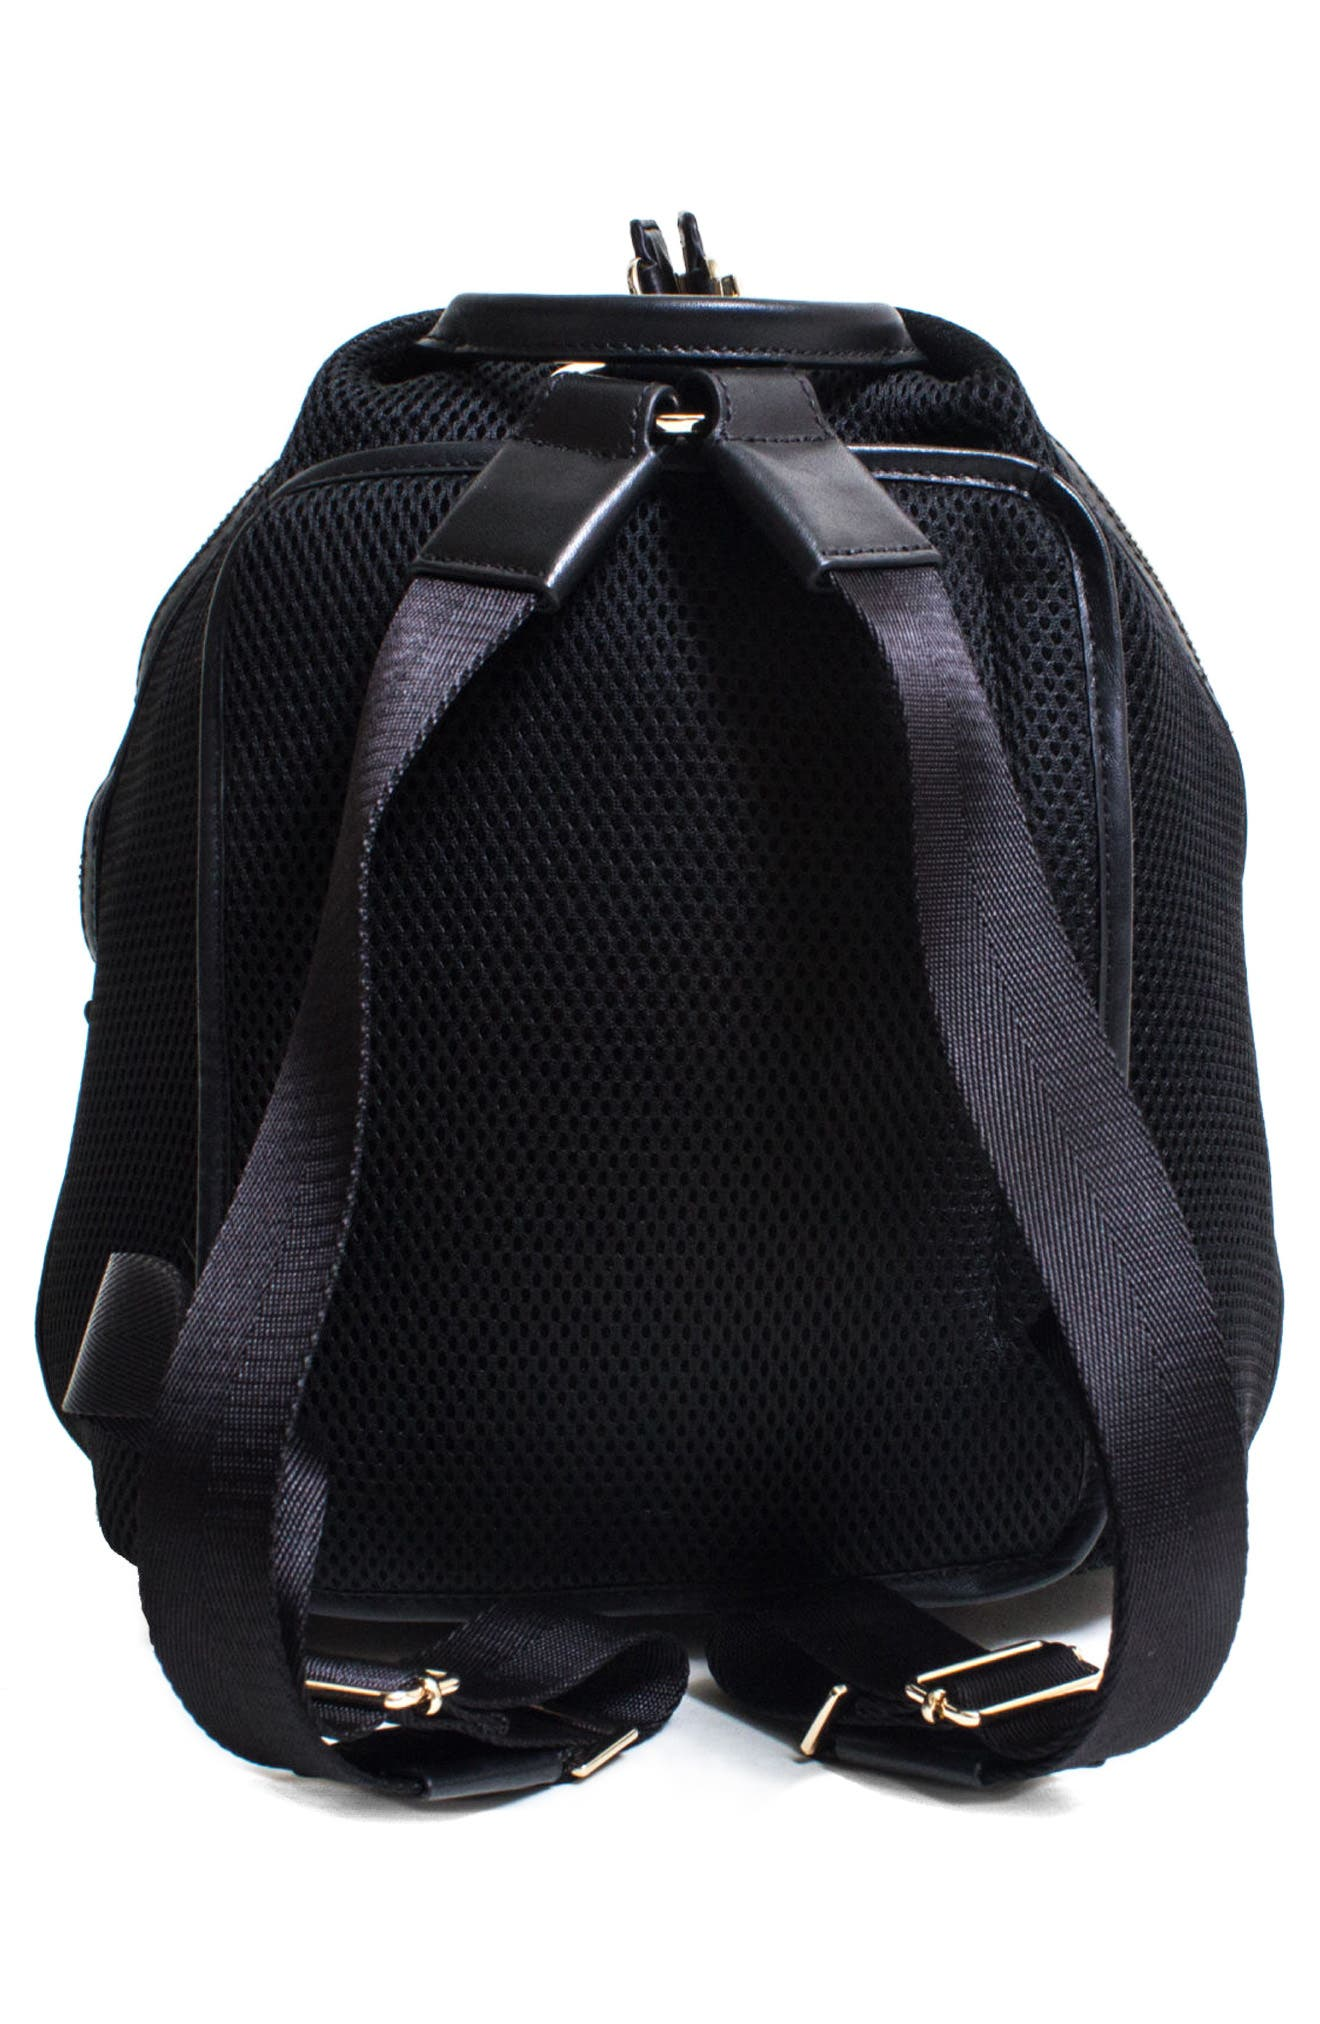 Dance 2 Mesh with Leather Trim Backpack,                             Alternate thumbnail 3, color,                             001